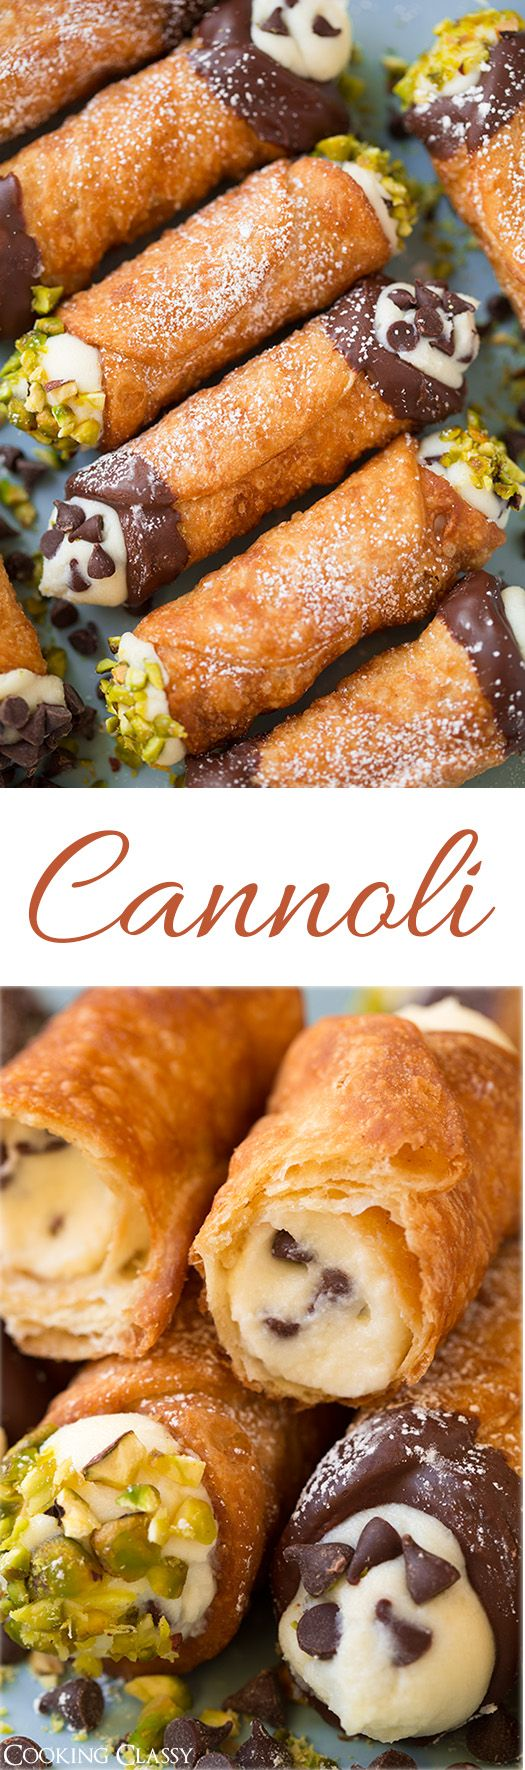 Who doesn't love cannolis?